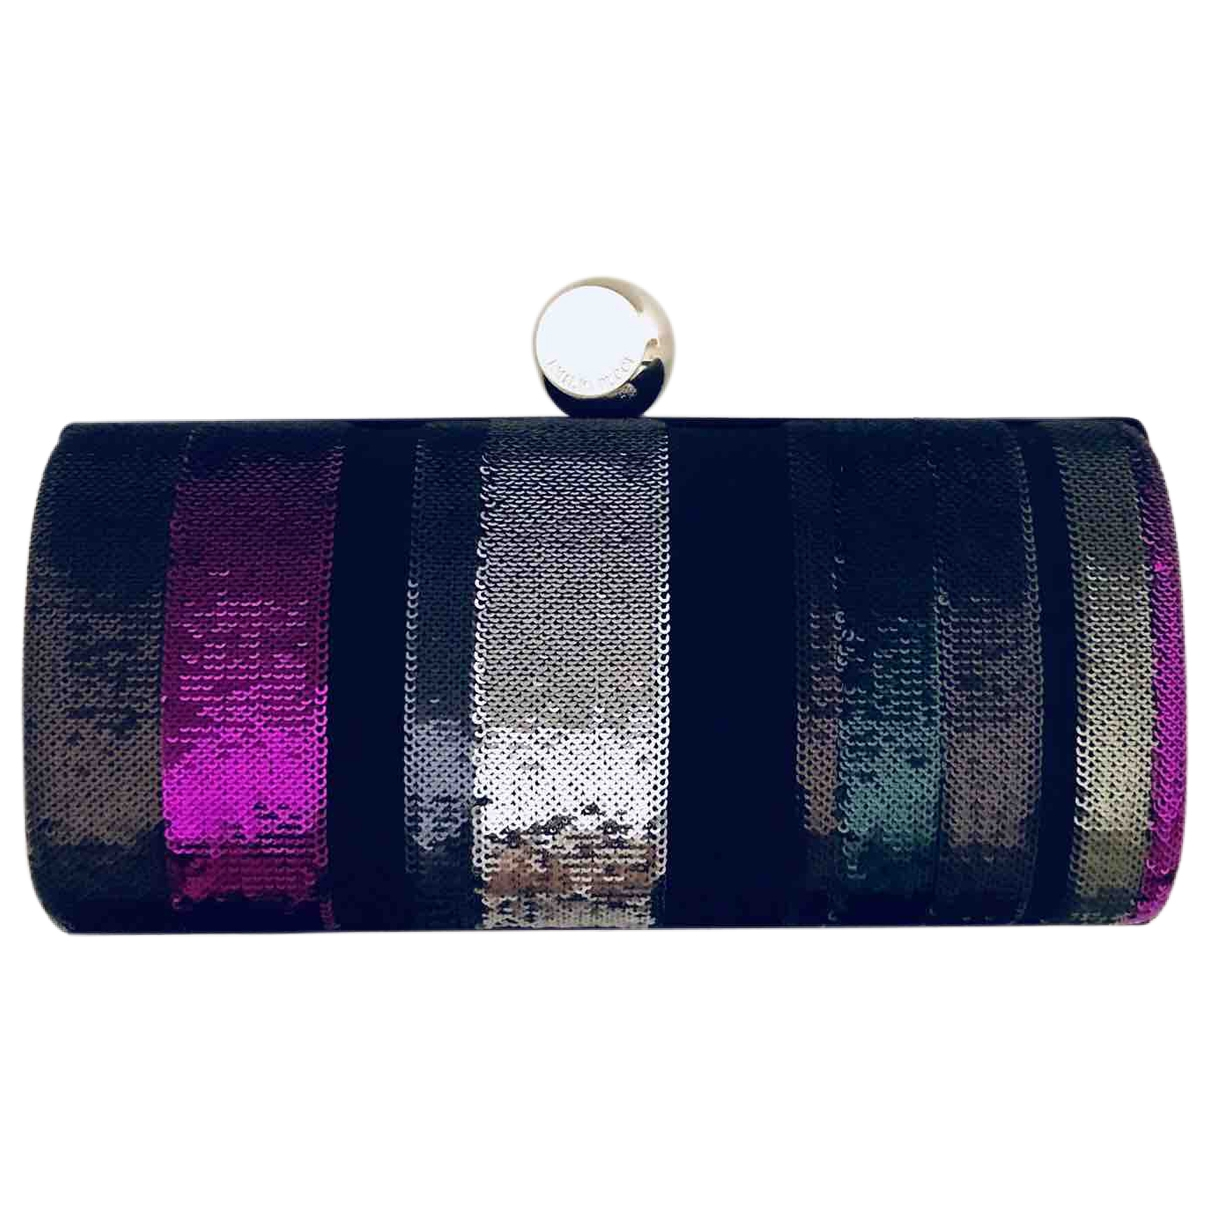 Emilio Pucci \N Multicolour Glitter Clutch bag for Women \N